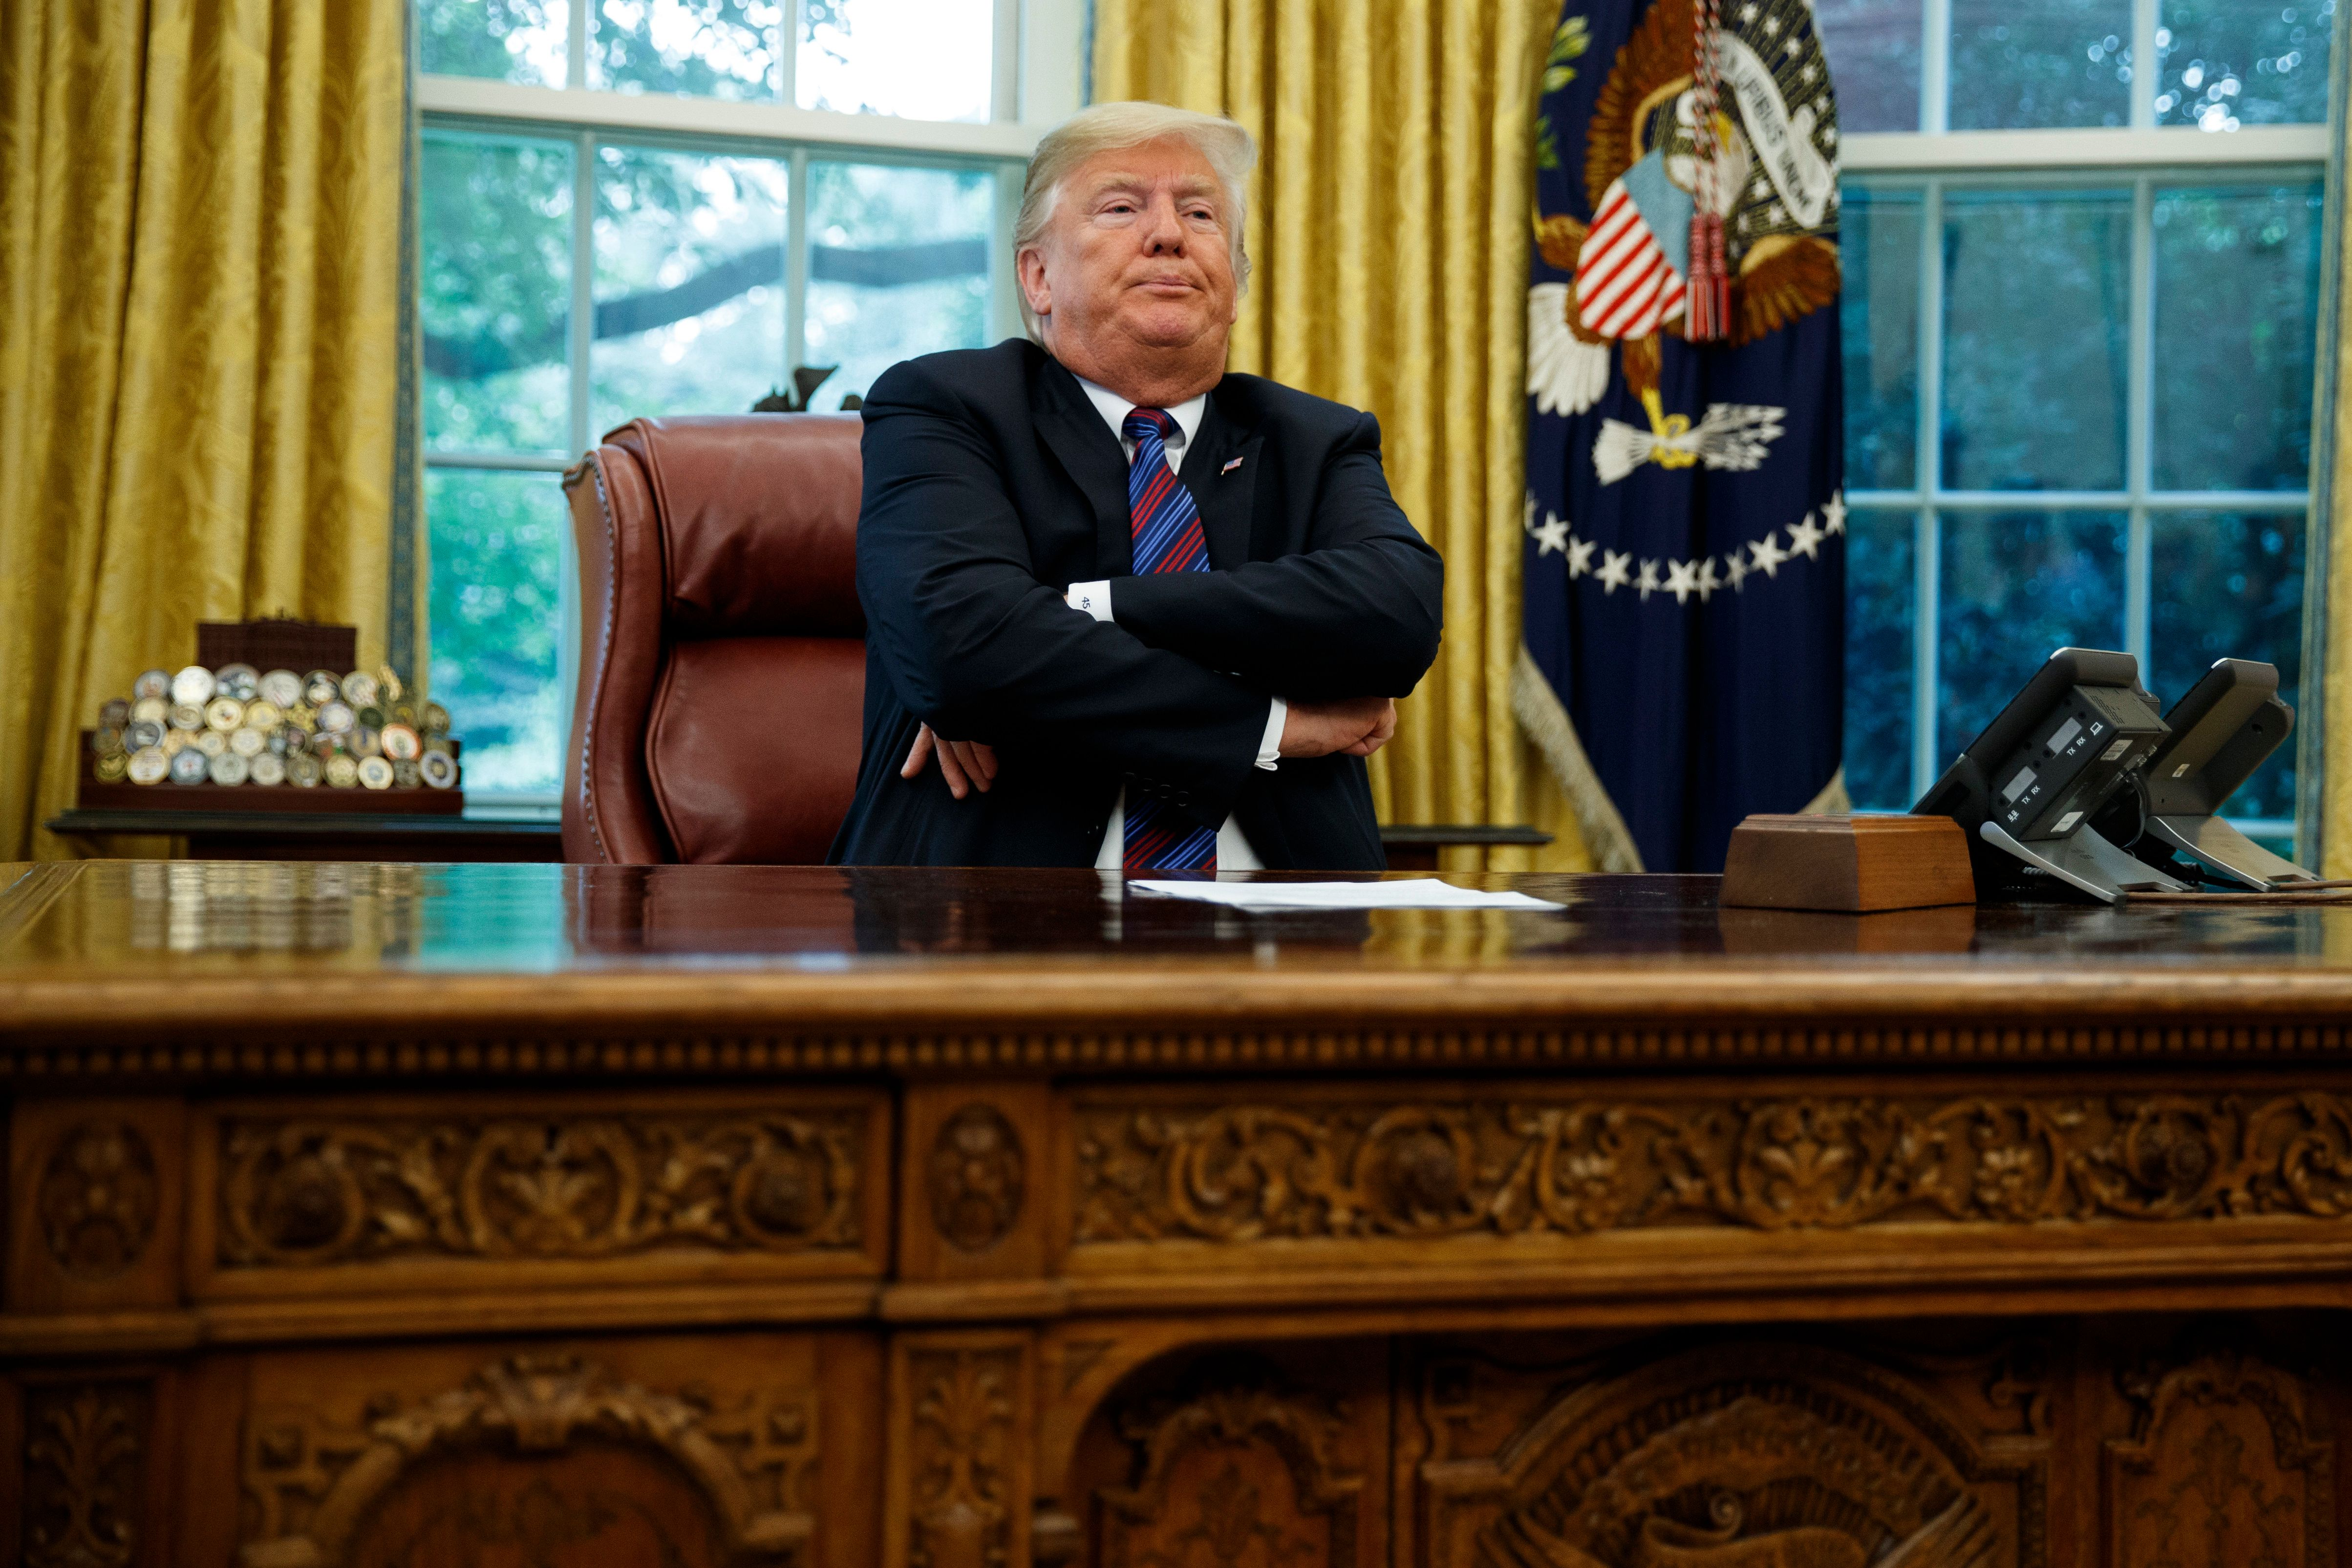 """President Donald Trump crosses his arms after speaking with Mexican President Enrique Pena Nieto on the phone about a trade agreement between the United States and Mexico, in the Oval Office of the White House, Monday, Aug. 27, 2018, in Washington. Trump has bowed to widespread pressure from veterans groups and others to do more to honor John McCain's death. Trump on Monday ordered flags at the White House and elsewhere lowered to half-staff until the six-term senator is buried Sunday. He also proclaimed """"respect"""" for McCain, with whom he feuded bitterly for years. It was a marked reversal from Trump's refusal to comment on McCain. Earlier Monday, the White House flag had been raised. (AP Photo/Evan Vucci)"""